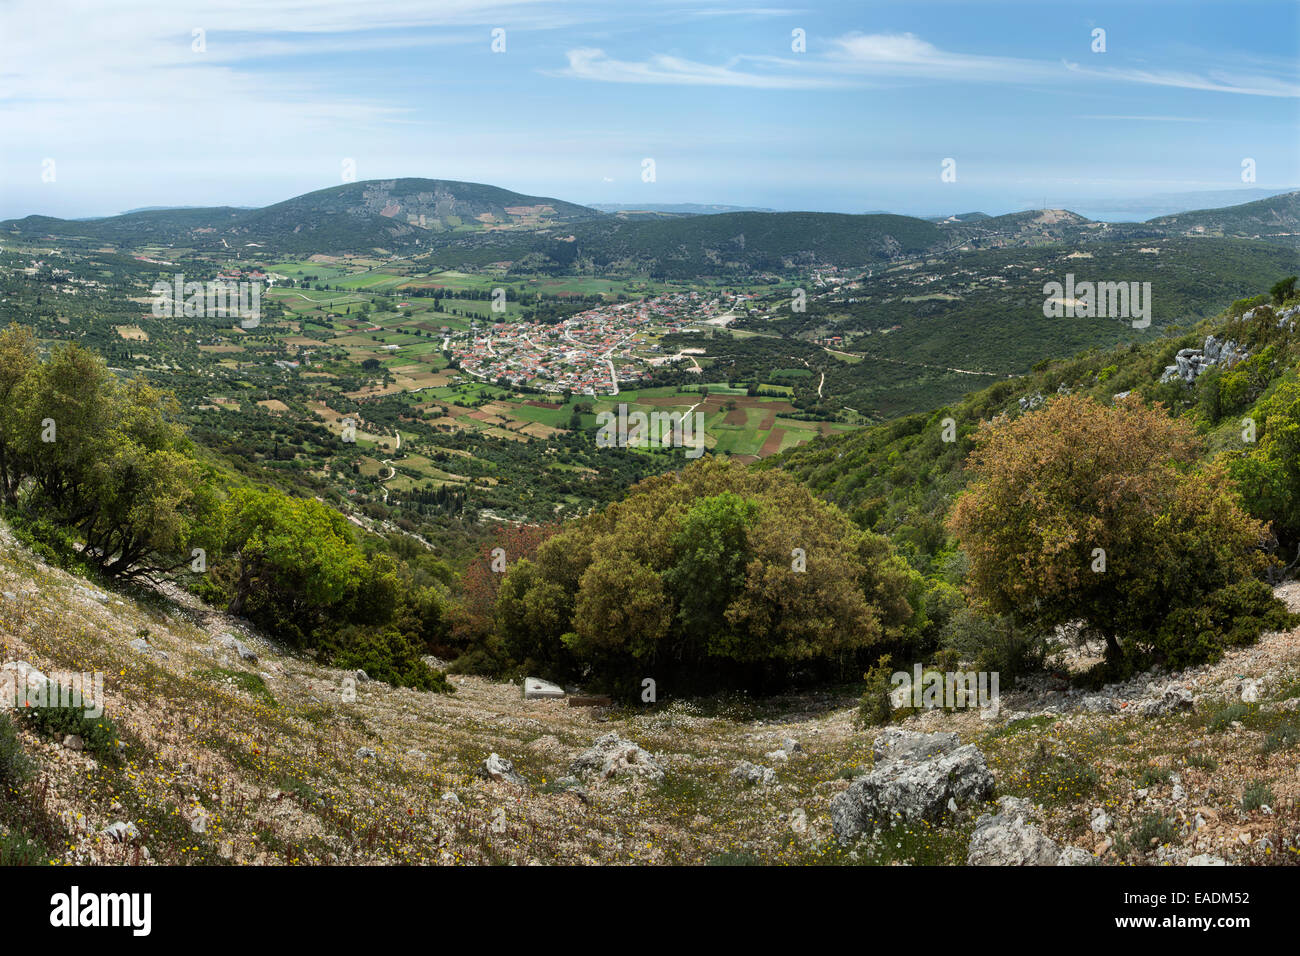 A stunning landscape looking West over Valsamata from Mount Aenos, Kefalonia. Stock Photo